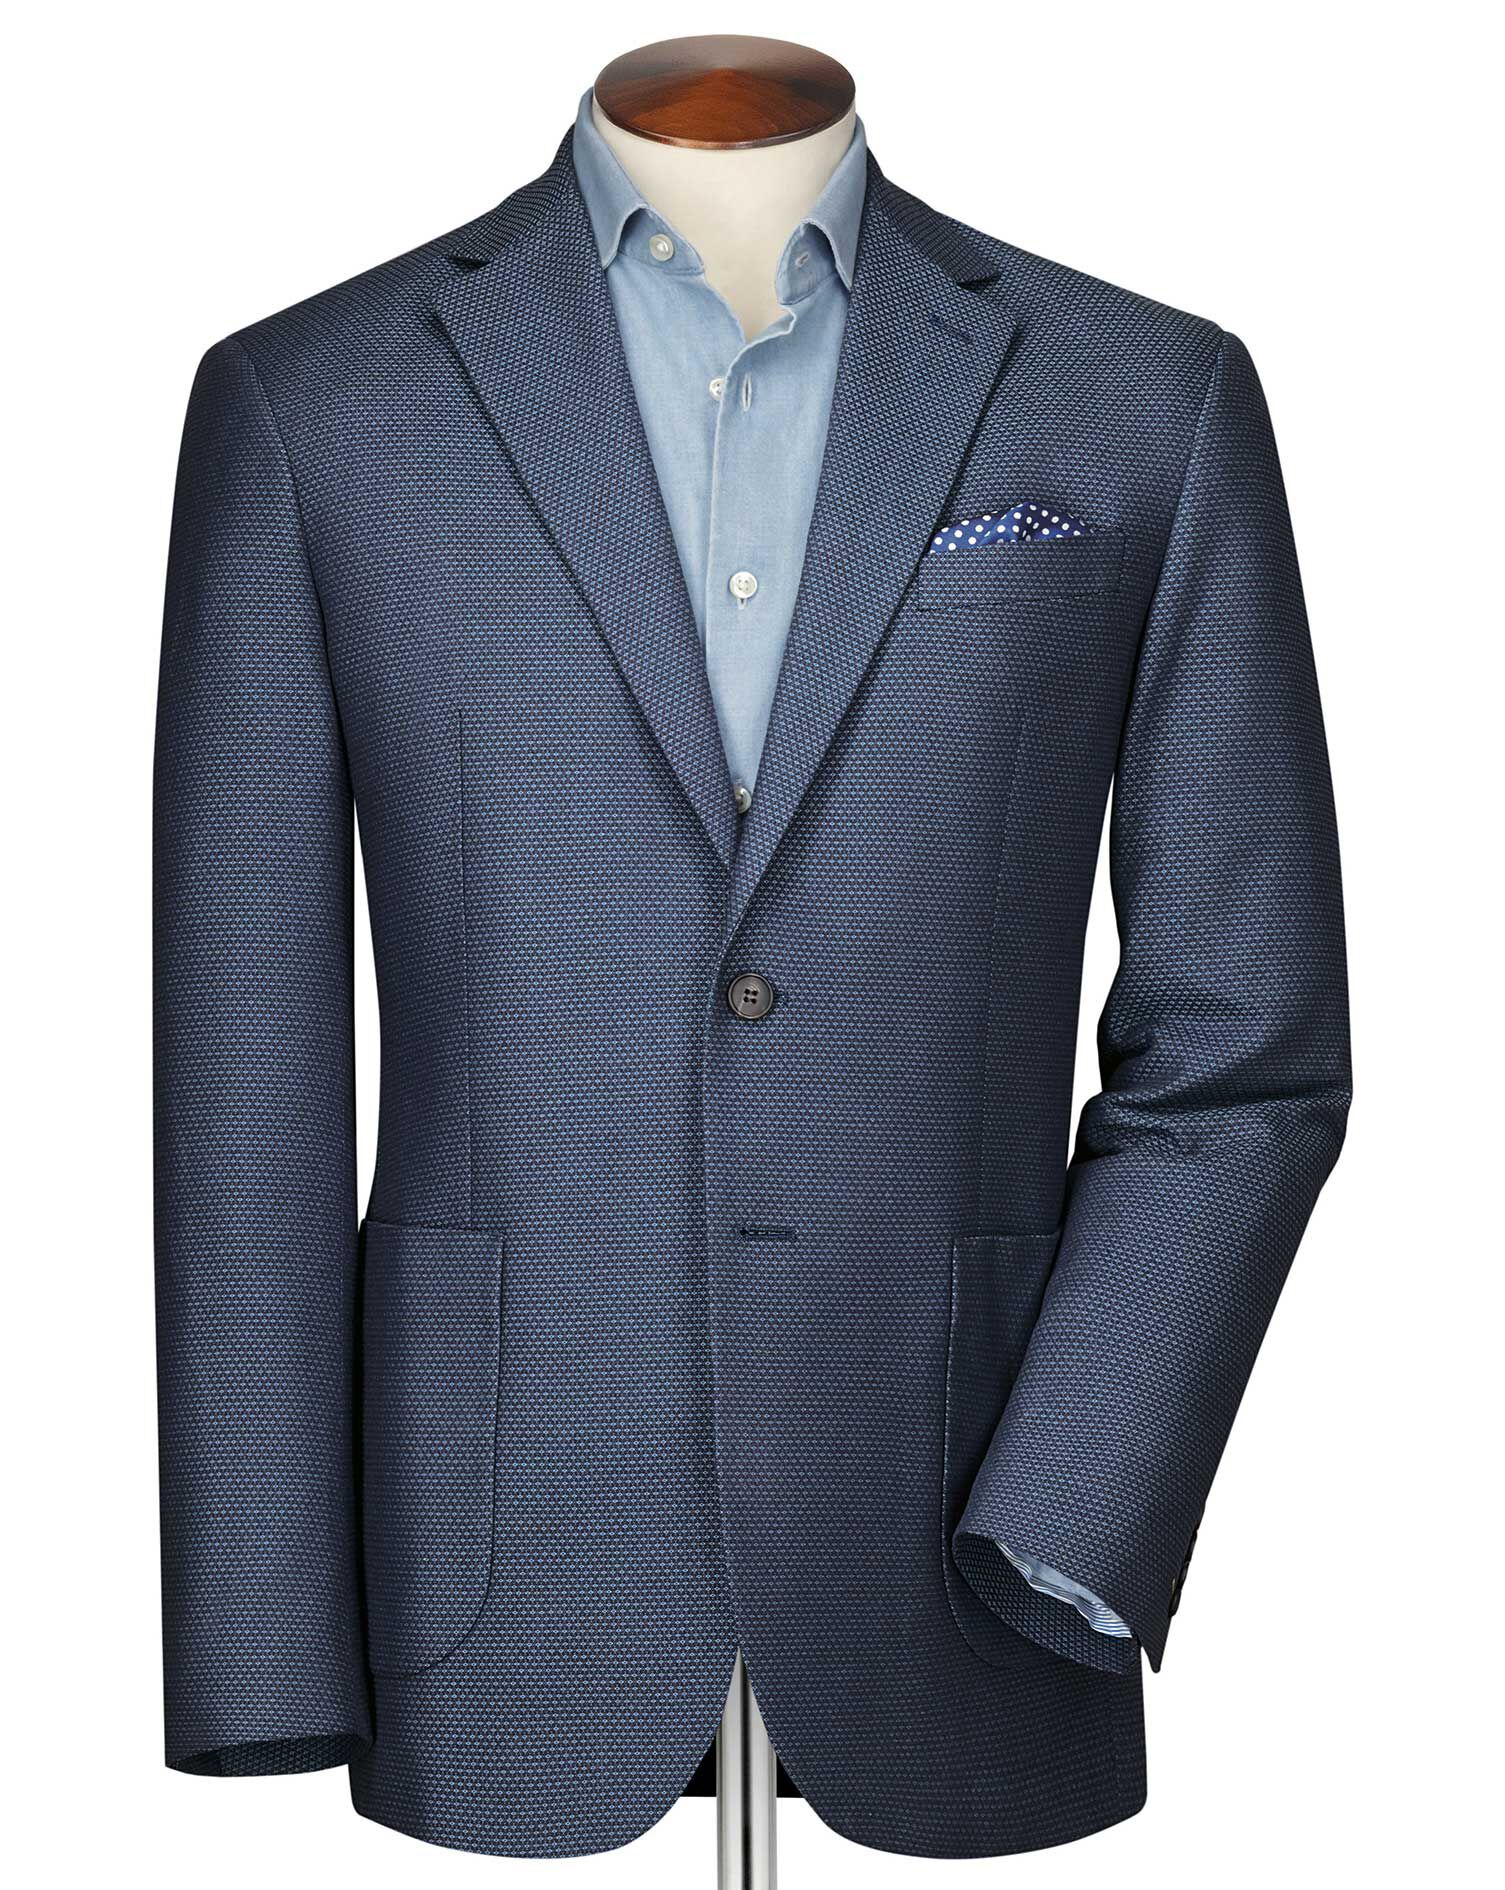 Classic Fit Blue and Sky Semi-Plain Cotton Jacket Size 38 by Charles Tyrwhitt